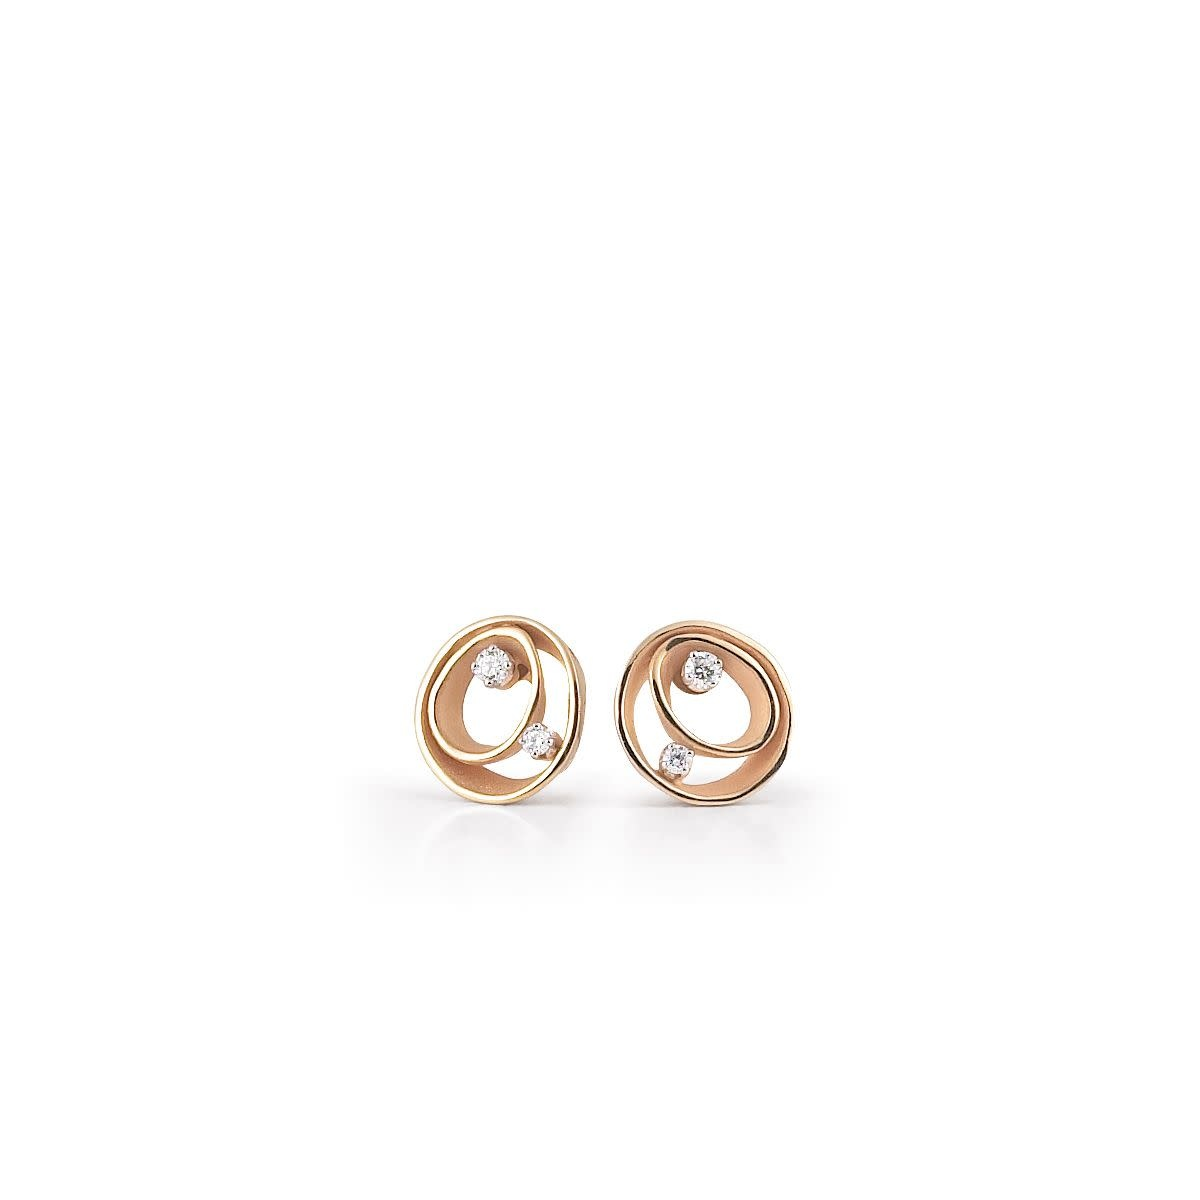 Dune Collection Earrings, 18Kt Orange Apricot Gold With Diamonds-1